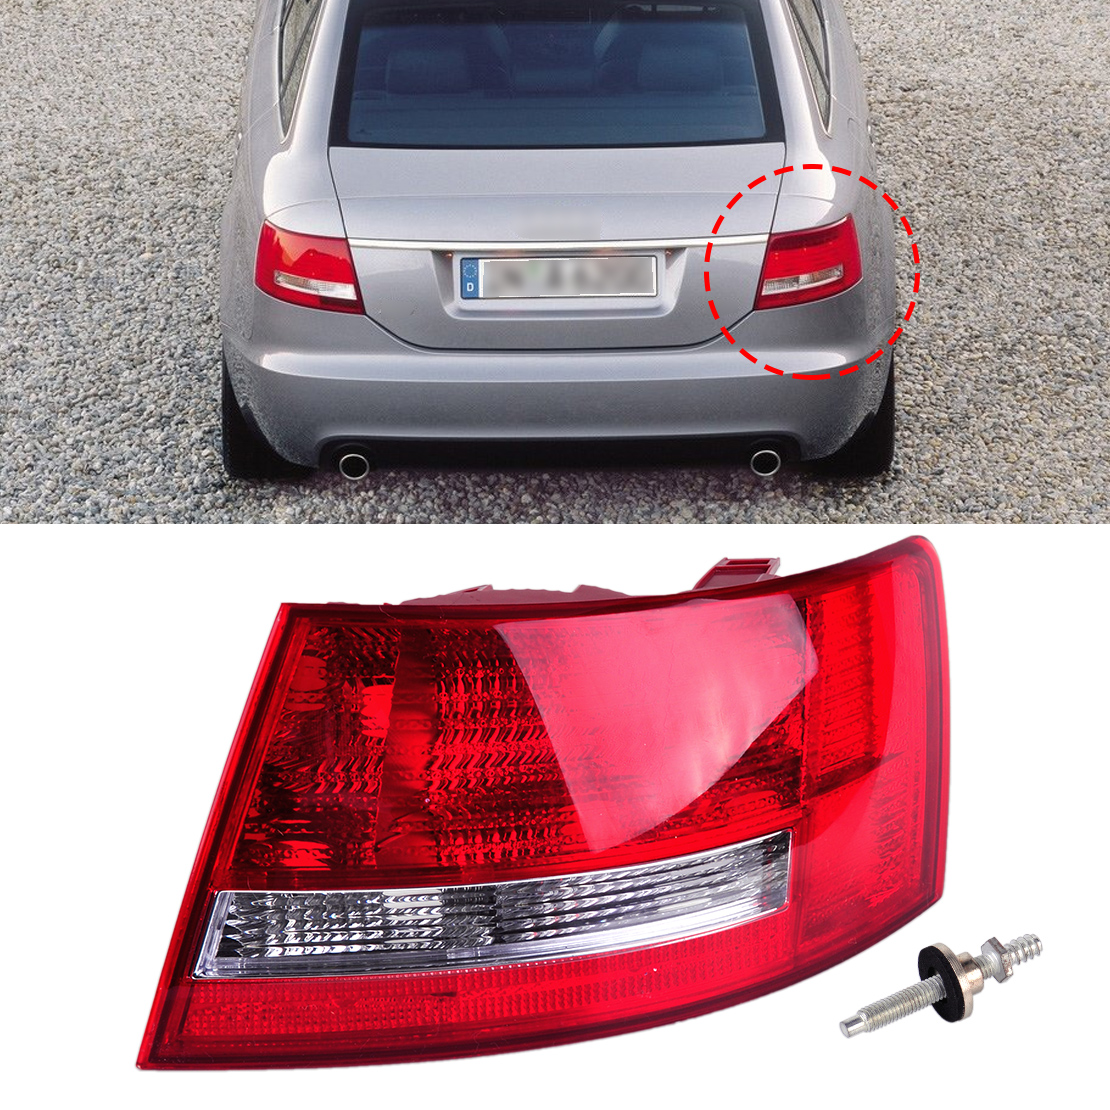 DWCX Rear Right Light Assembly Lamp Housing without Bulb 4F5 945 096 L 4F5 945 096 D for Audi A6 /A6 Quattro Sedan 2005 2006 -08 free shipping for skoda octavia sedan a5 2005 2006 2007 2008 right side rear lamp tail light